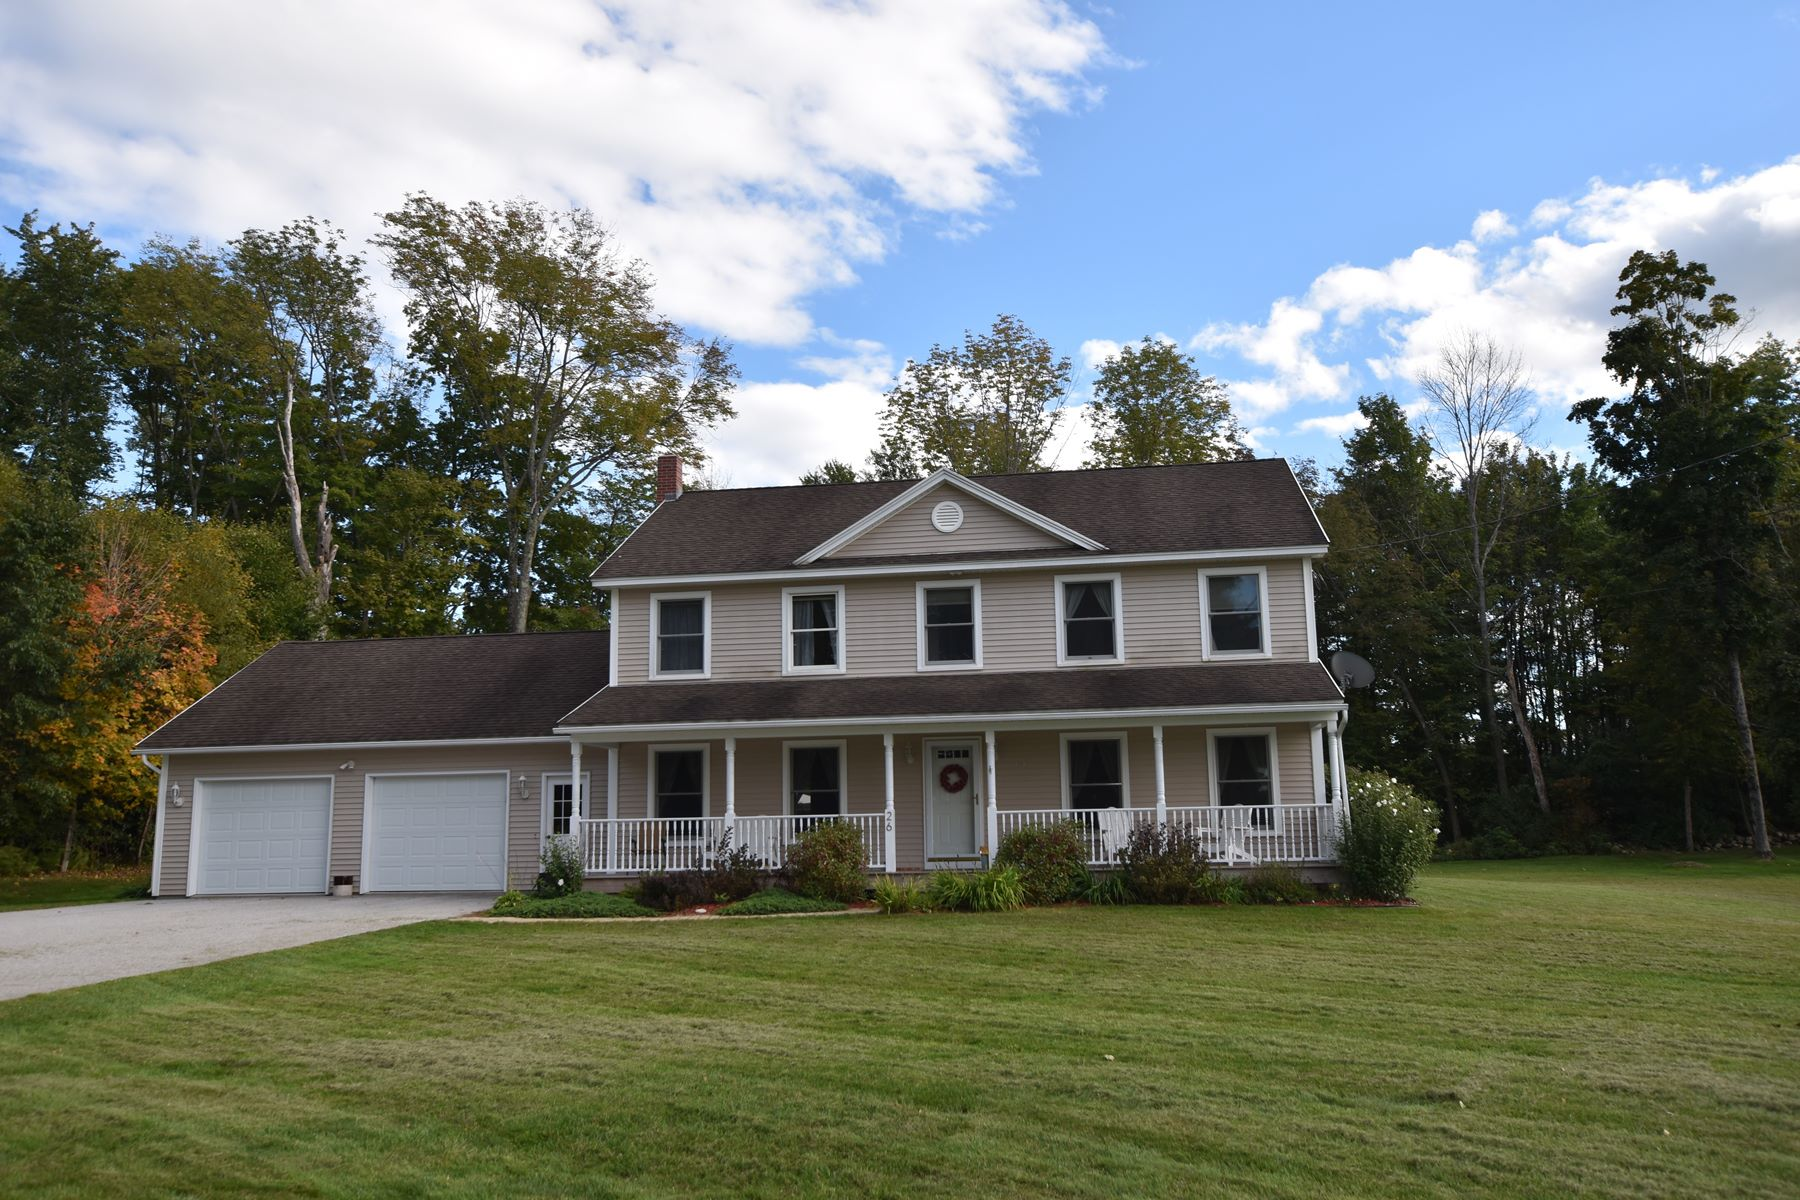 Single Family Home for Sale at Newer Colonial -Three Seasons Room-In Ground Pool 26 Marolin St Rutland, Vermont 05701 United States